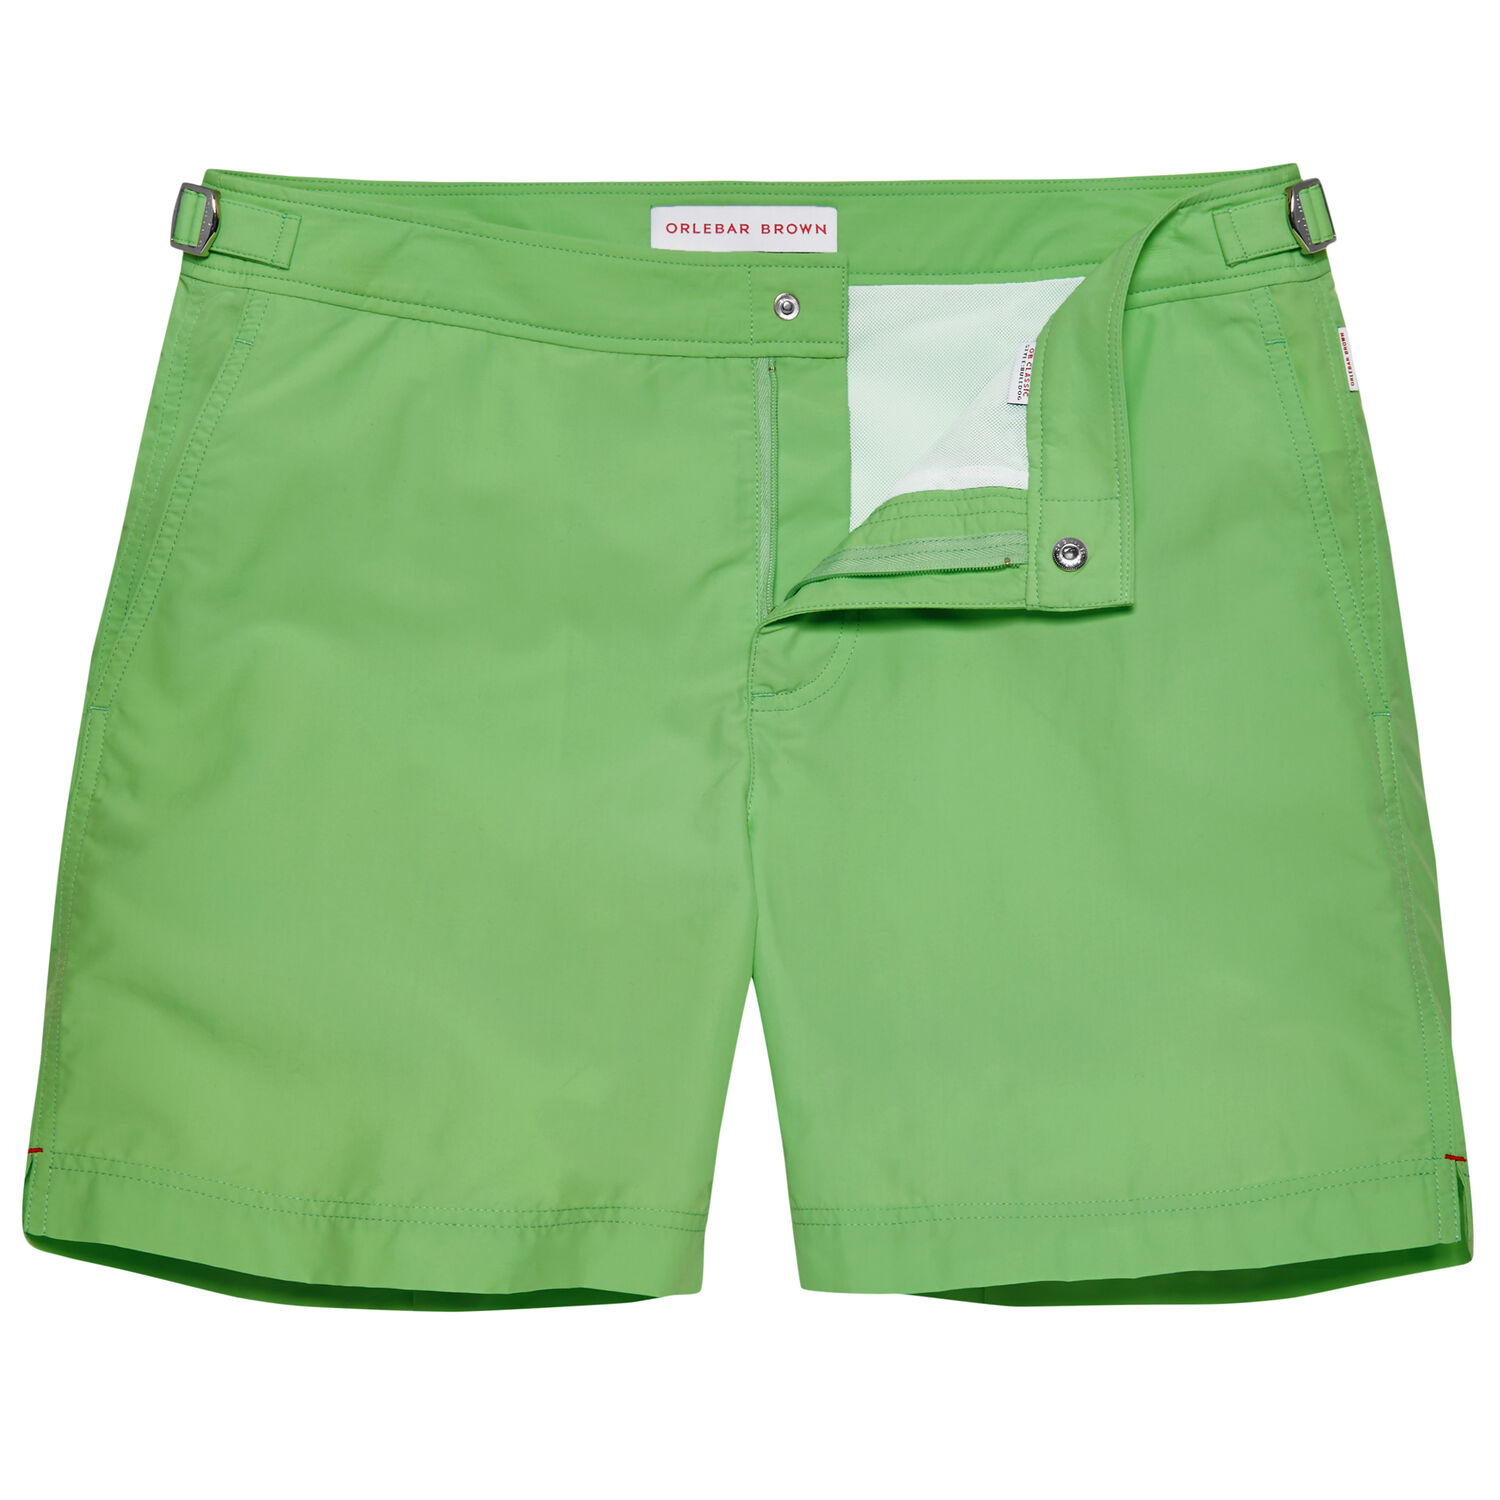 Orlebar Brown Bulldog SPRING GREEN